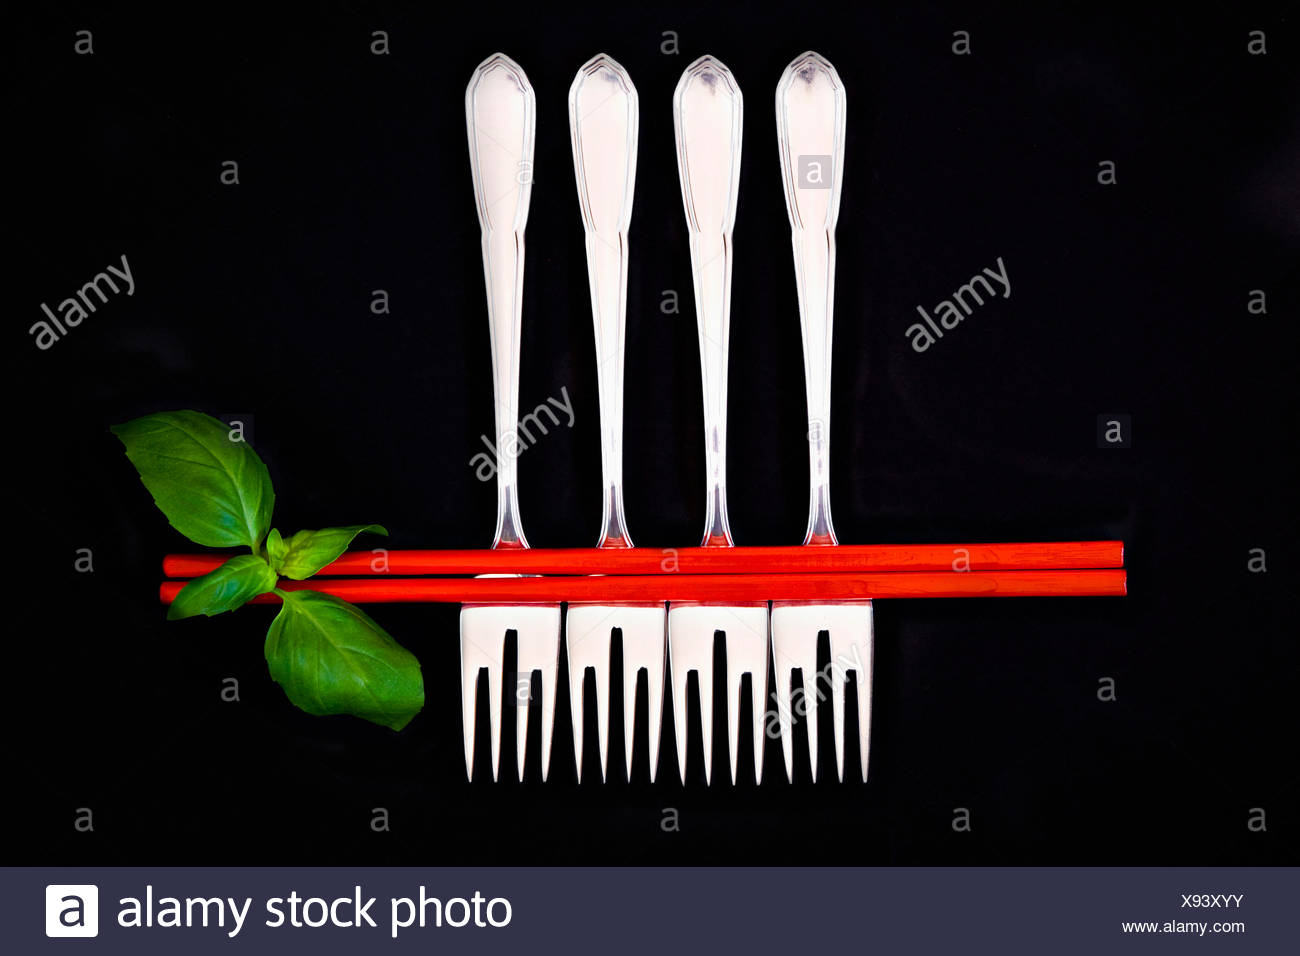 Chopsticks and forks - Stock Image